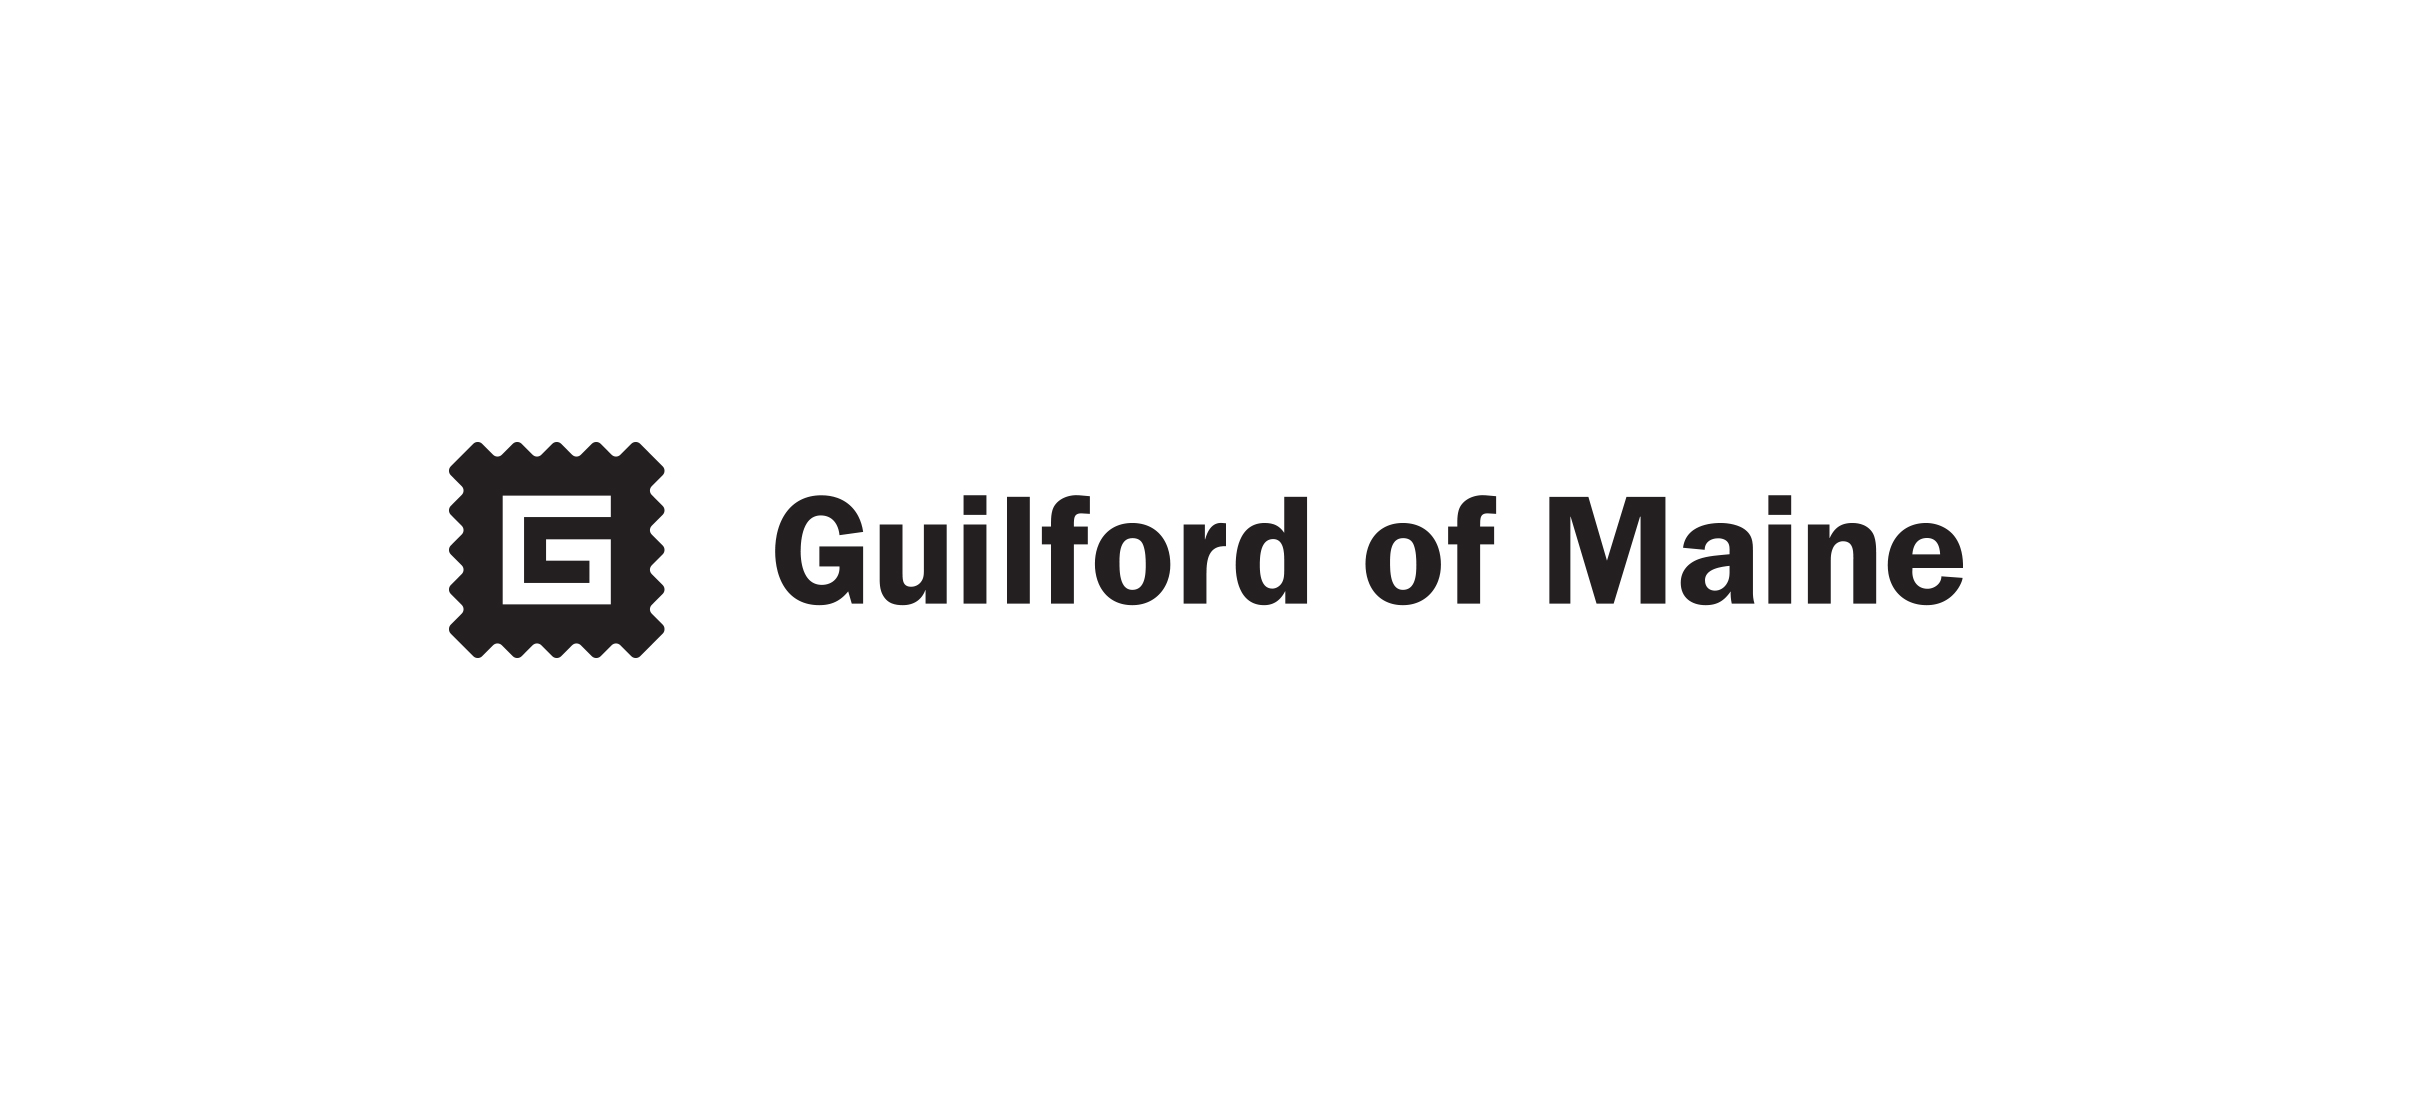 guilford of maine.jpg